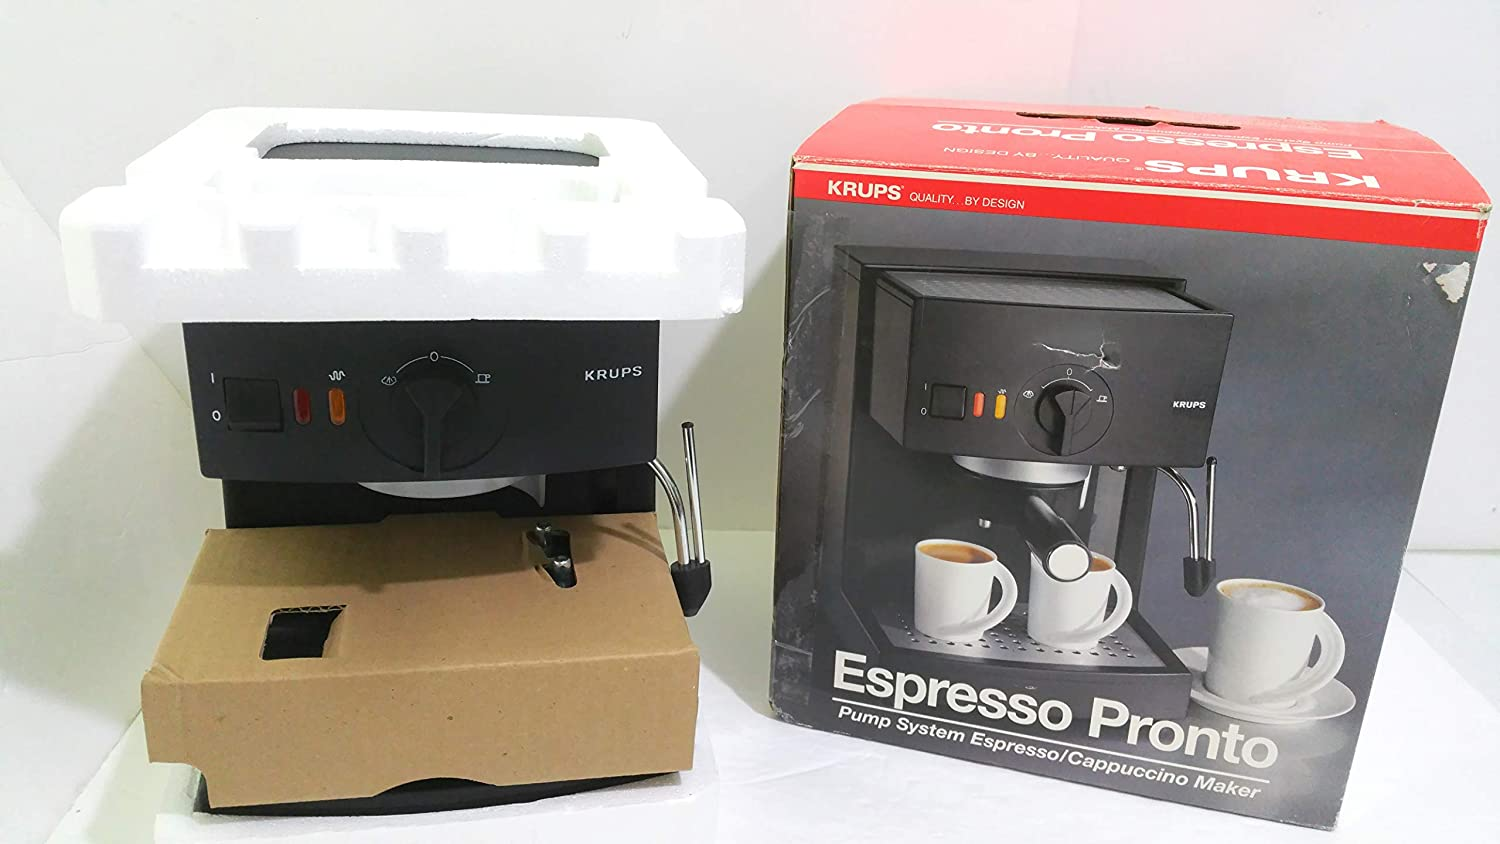 Amazon.com: Krups Espresso Pronto #988: Kitchen & Dining